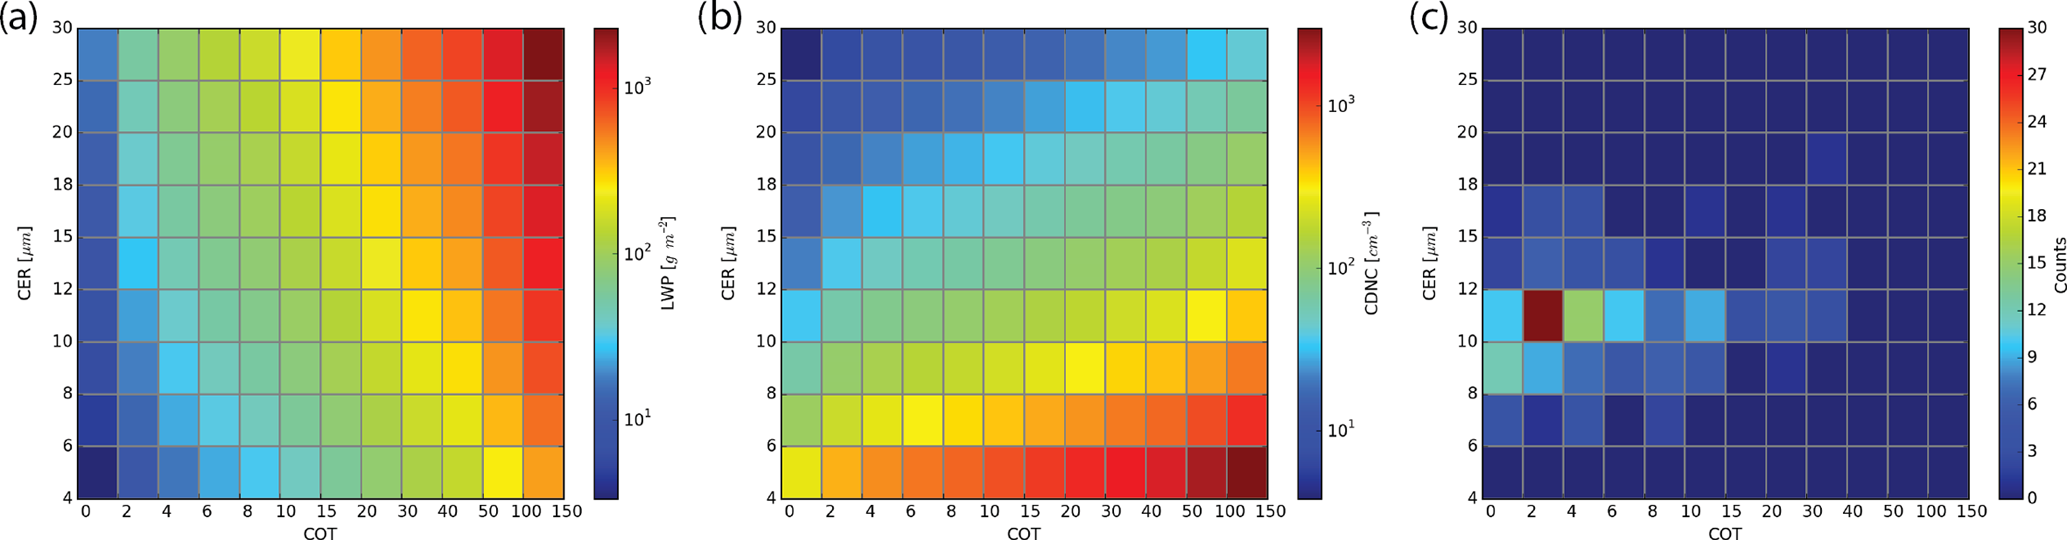 ACP - Subgrid variations of the cloud water and droplet number